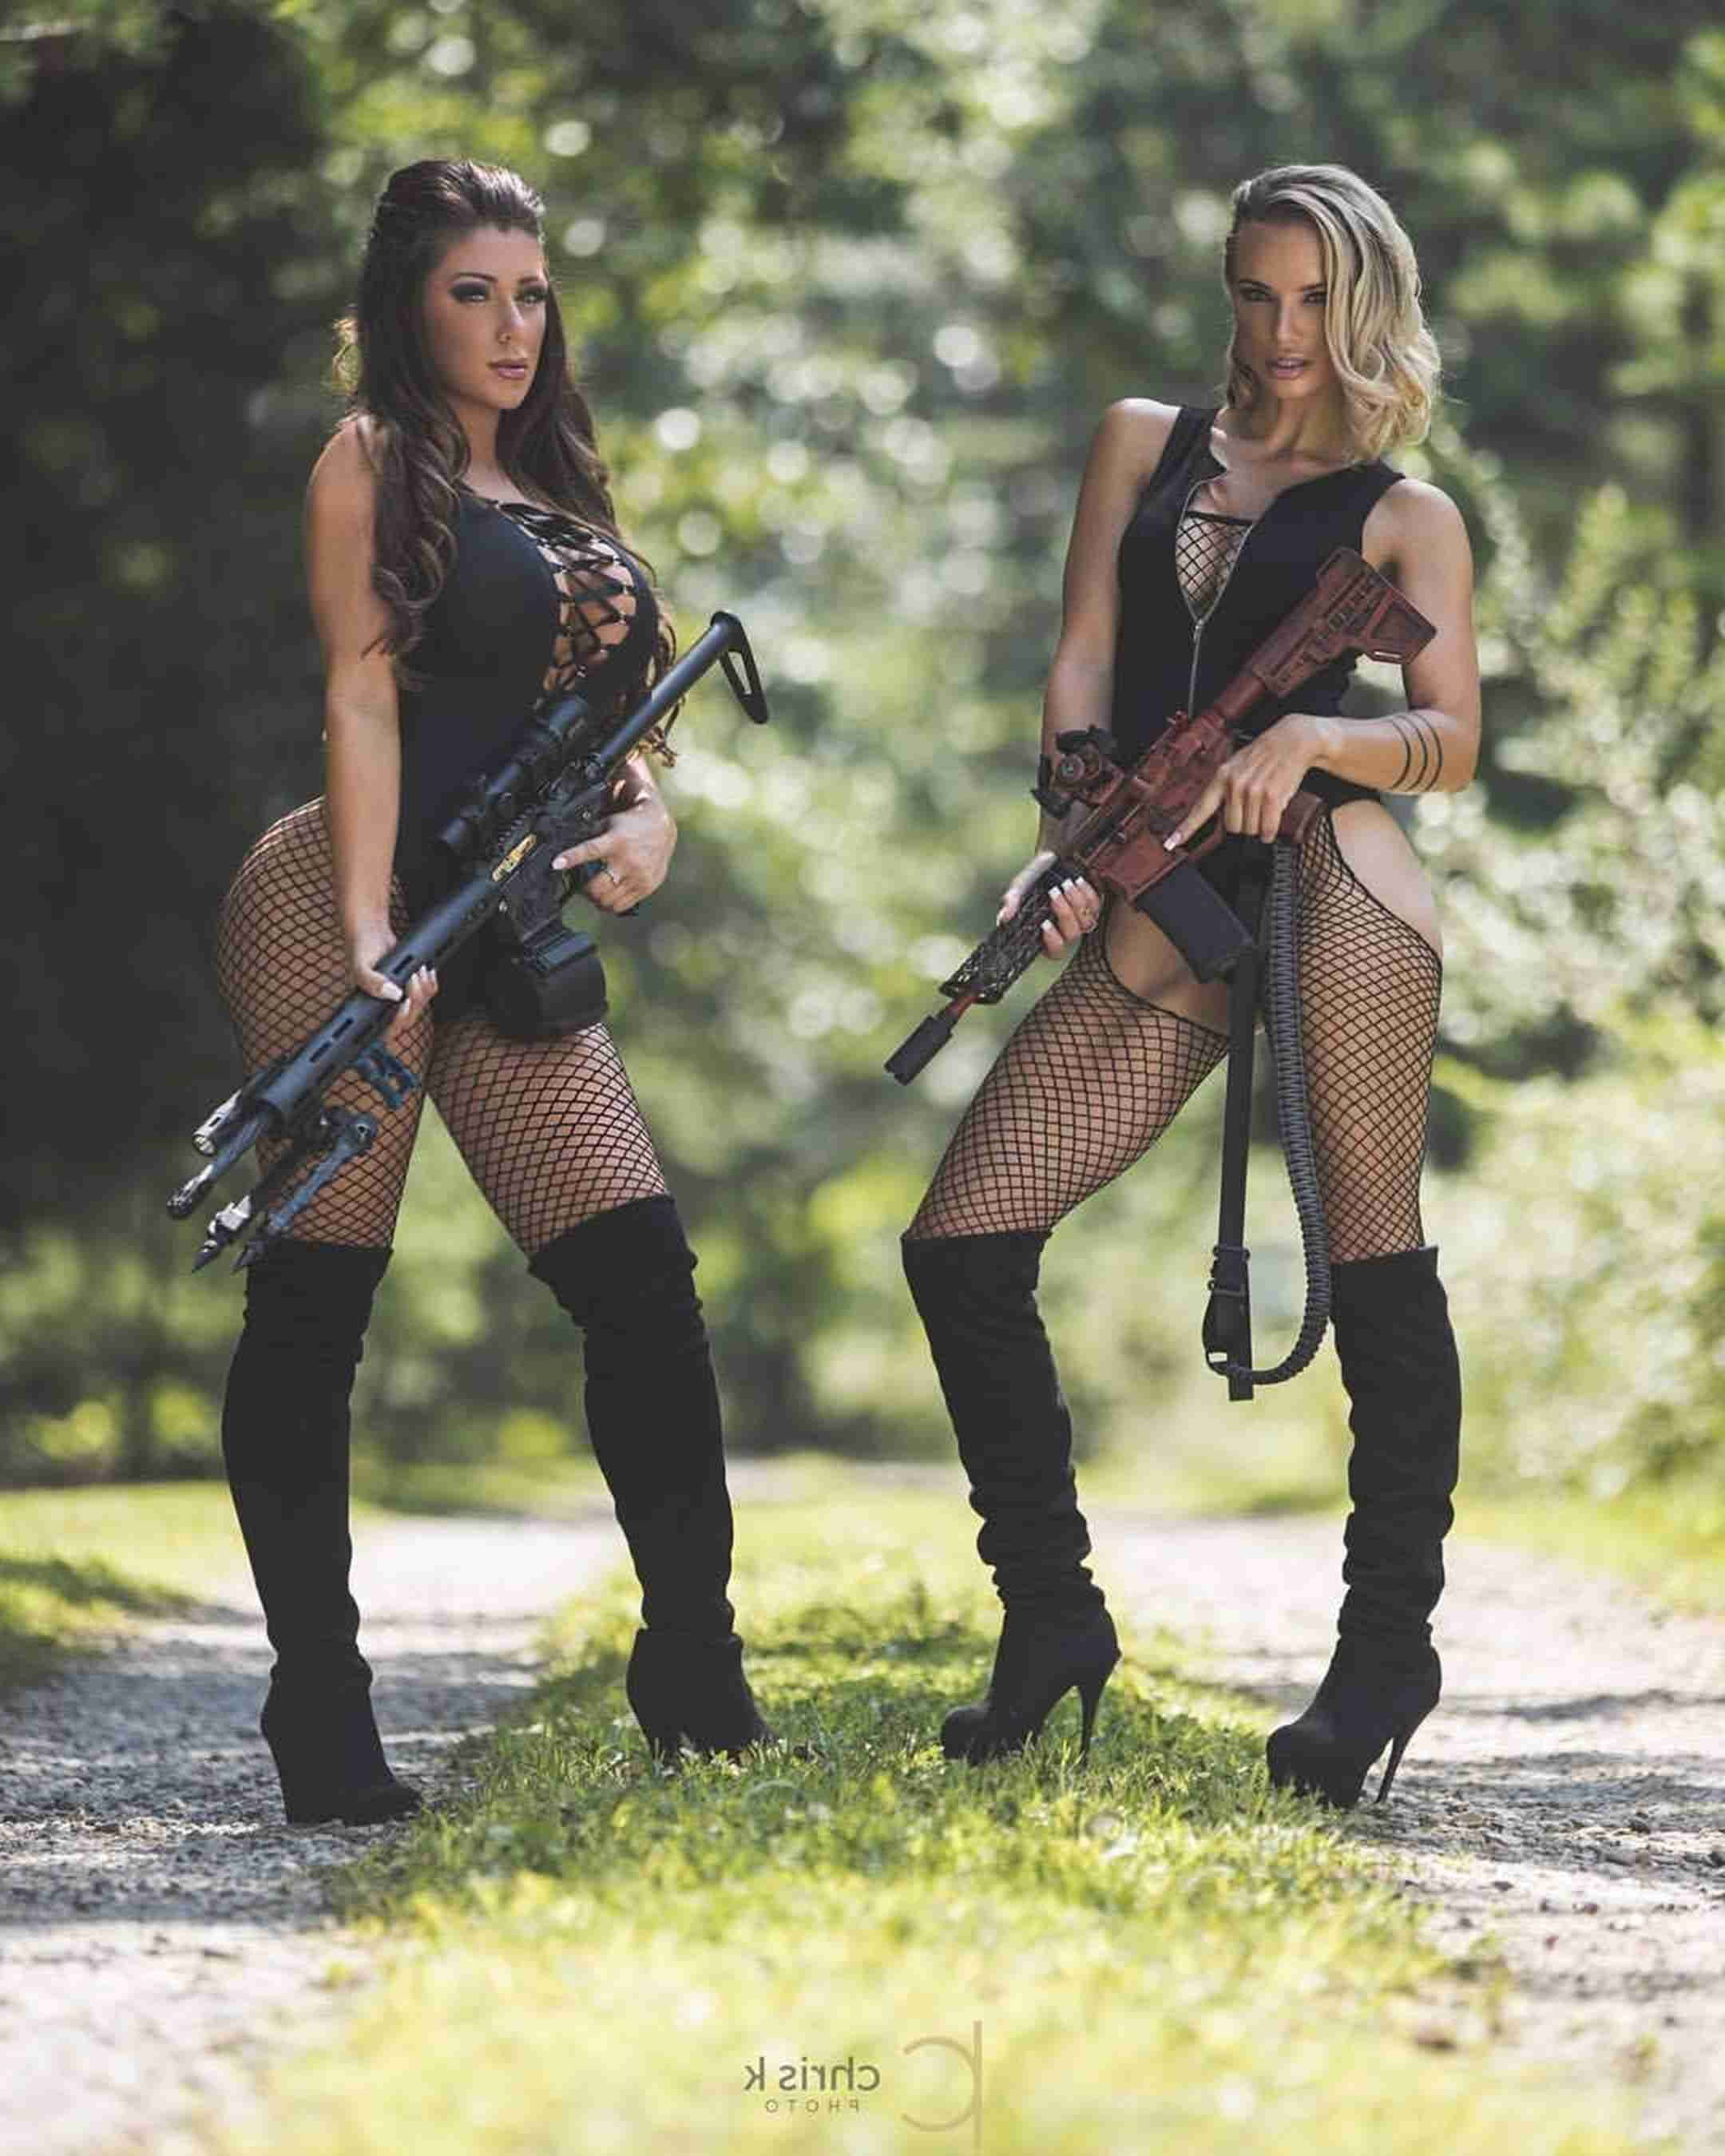 Pin By Gb Stanford On Misc In 2020 Military Girl Girl Guns